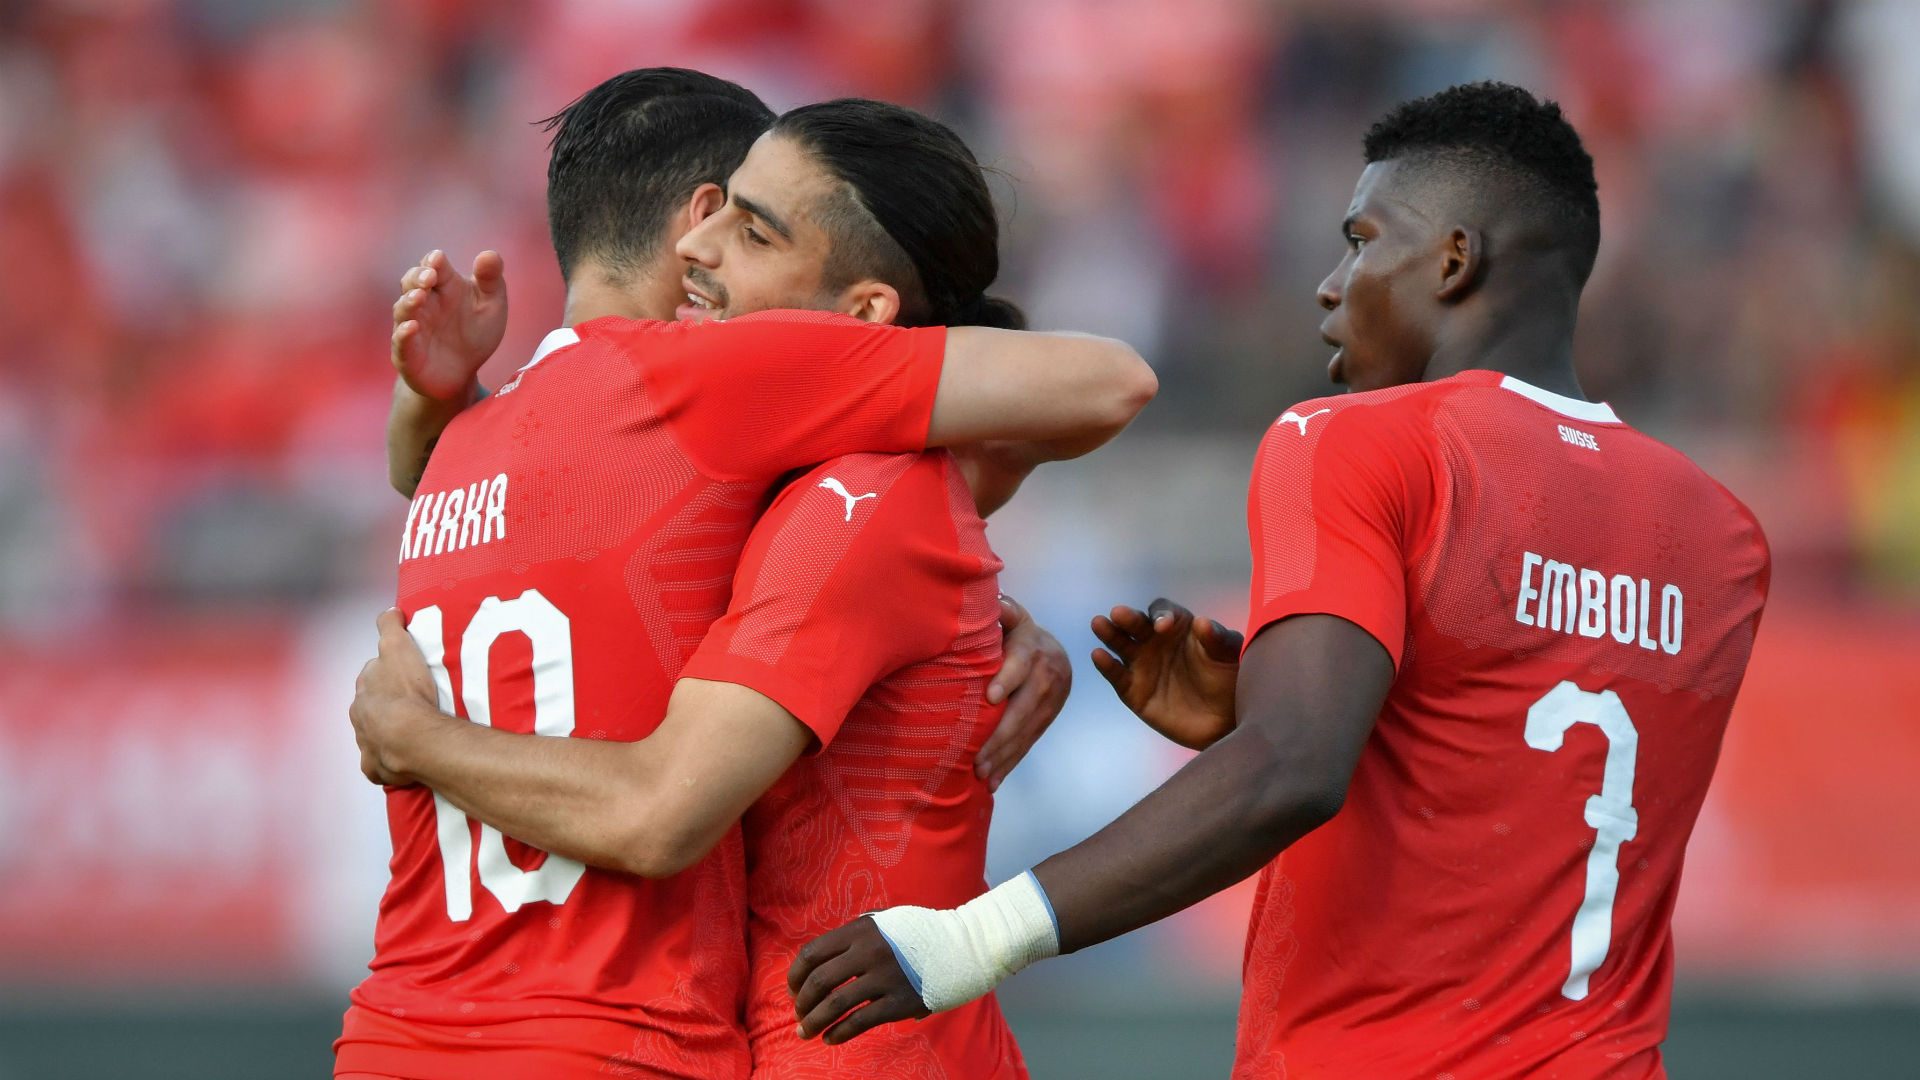 Switzerland contains, draws Brazil 1-1 at World Cup